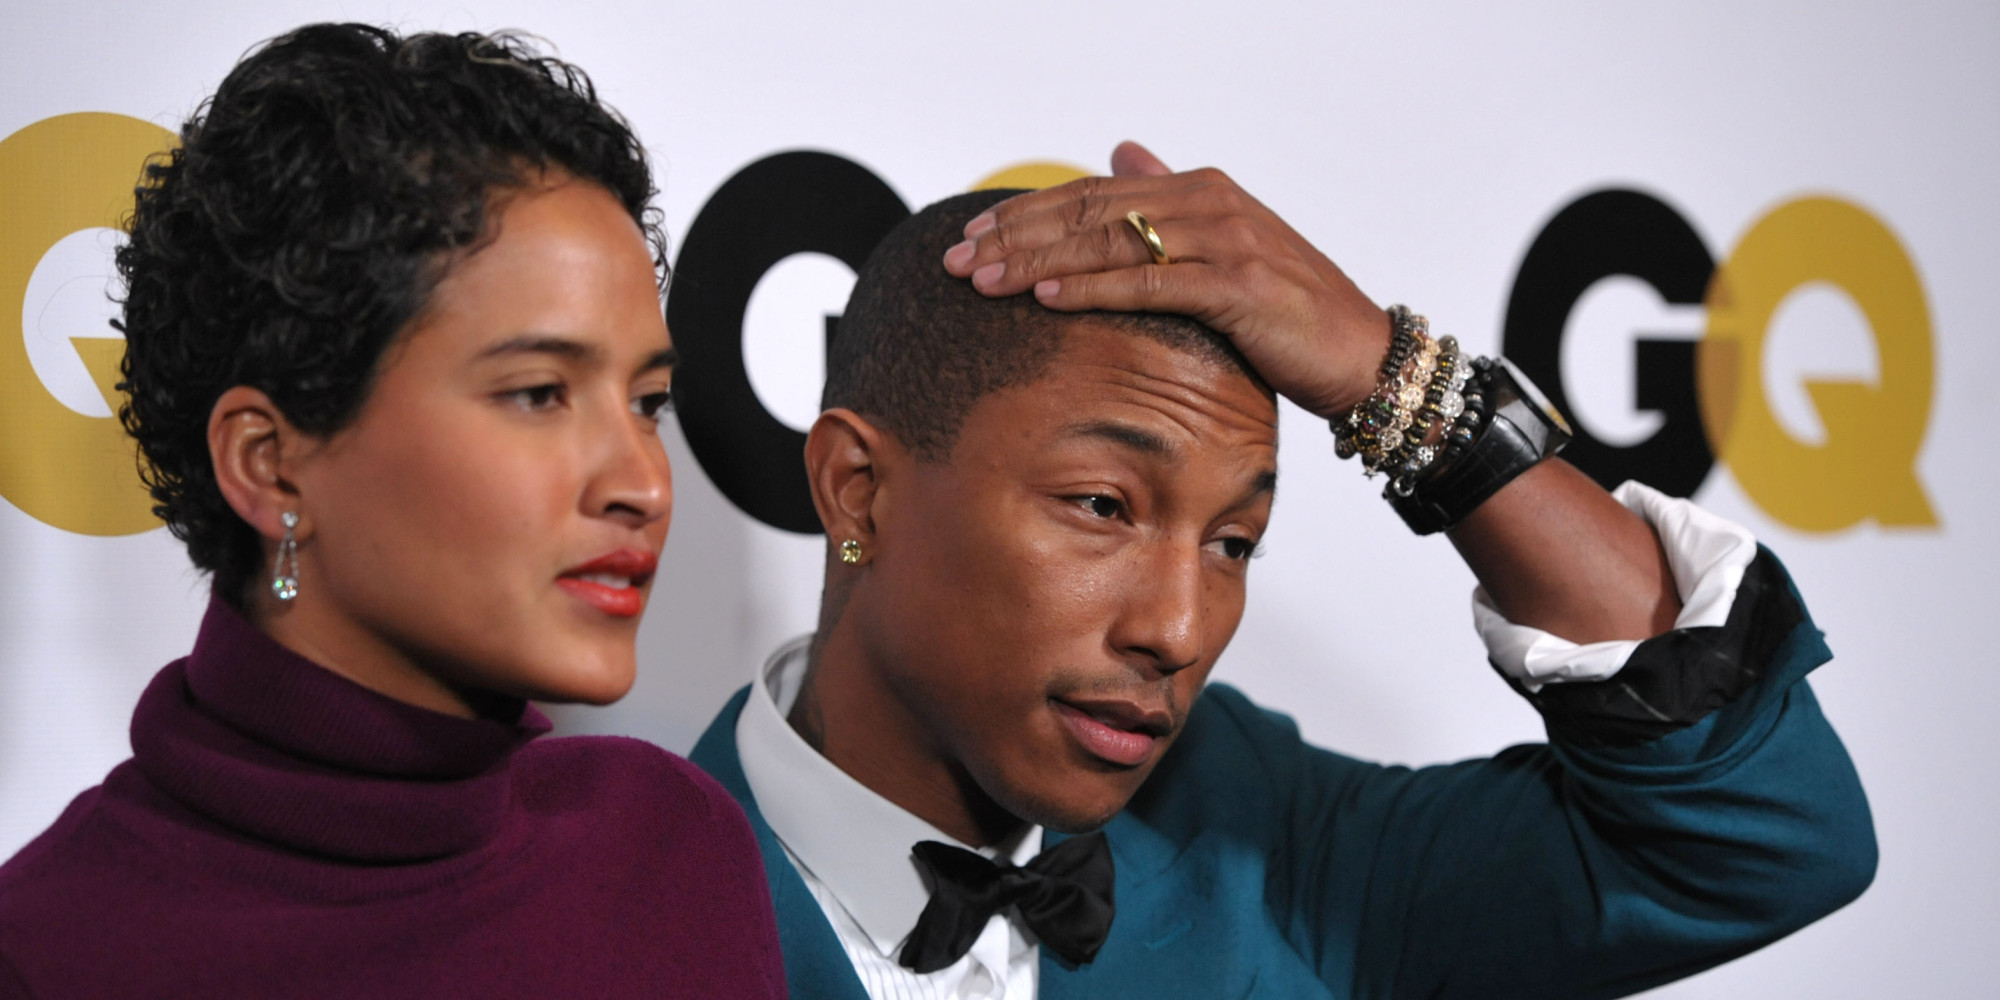 pharrell williams nice pictures